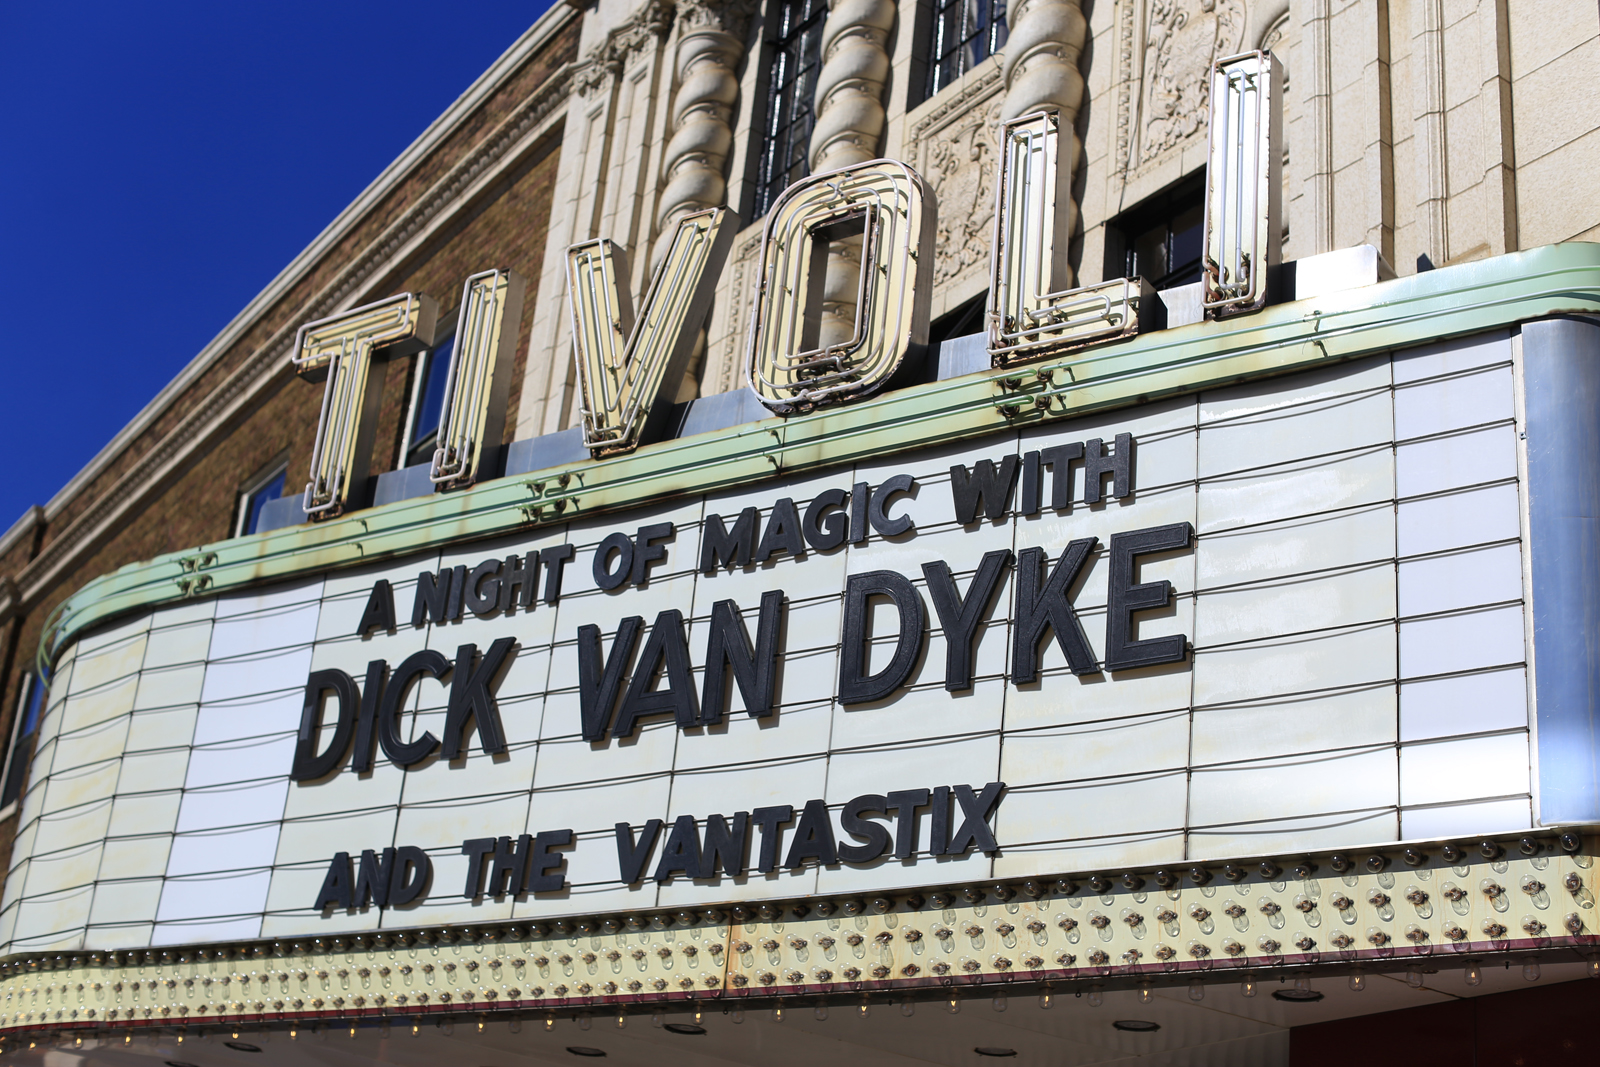 Tivoli Theatre In Downers Grove Il Day Of Magic With Dick Van Dyke The Walt Disney Birthplace